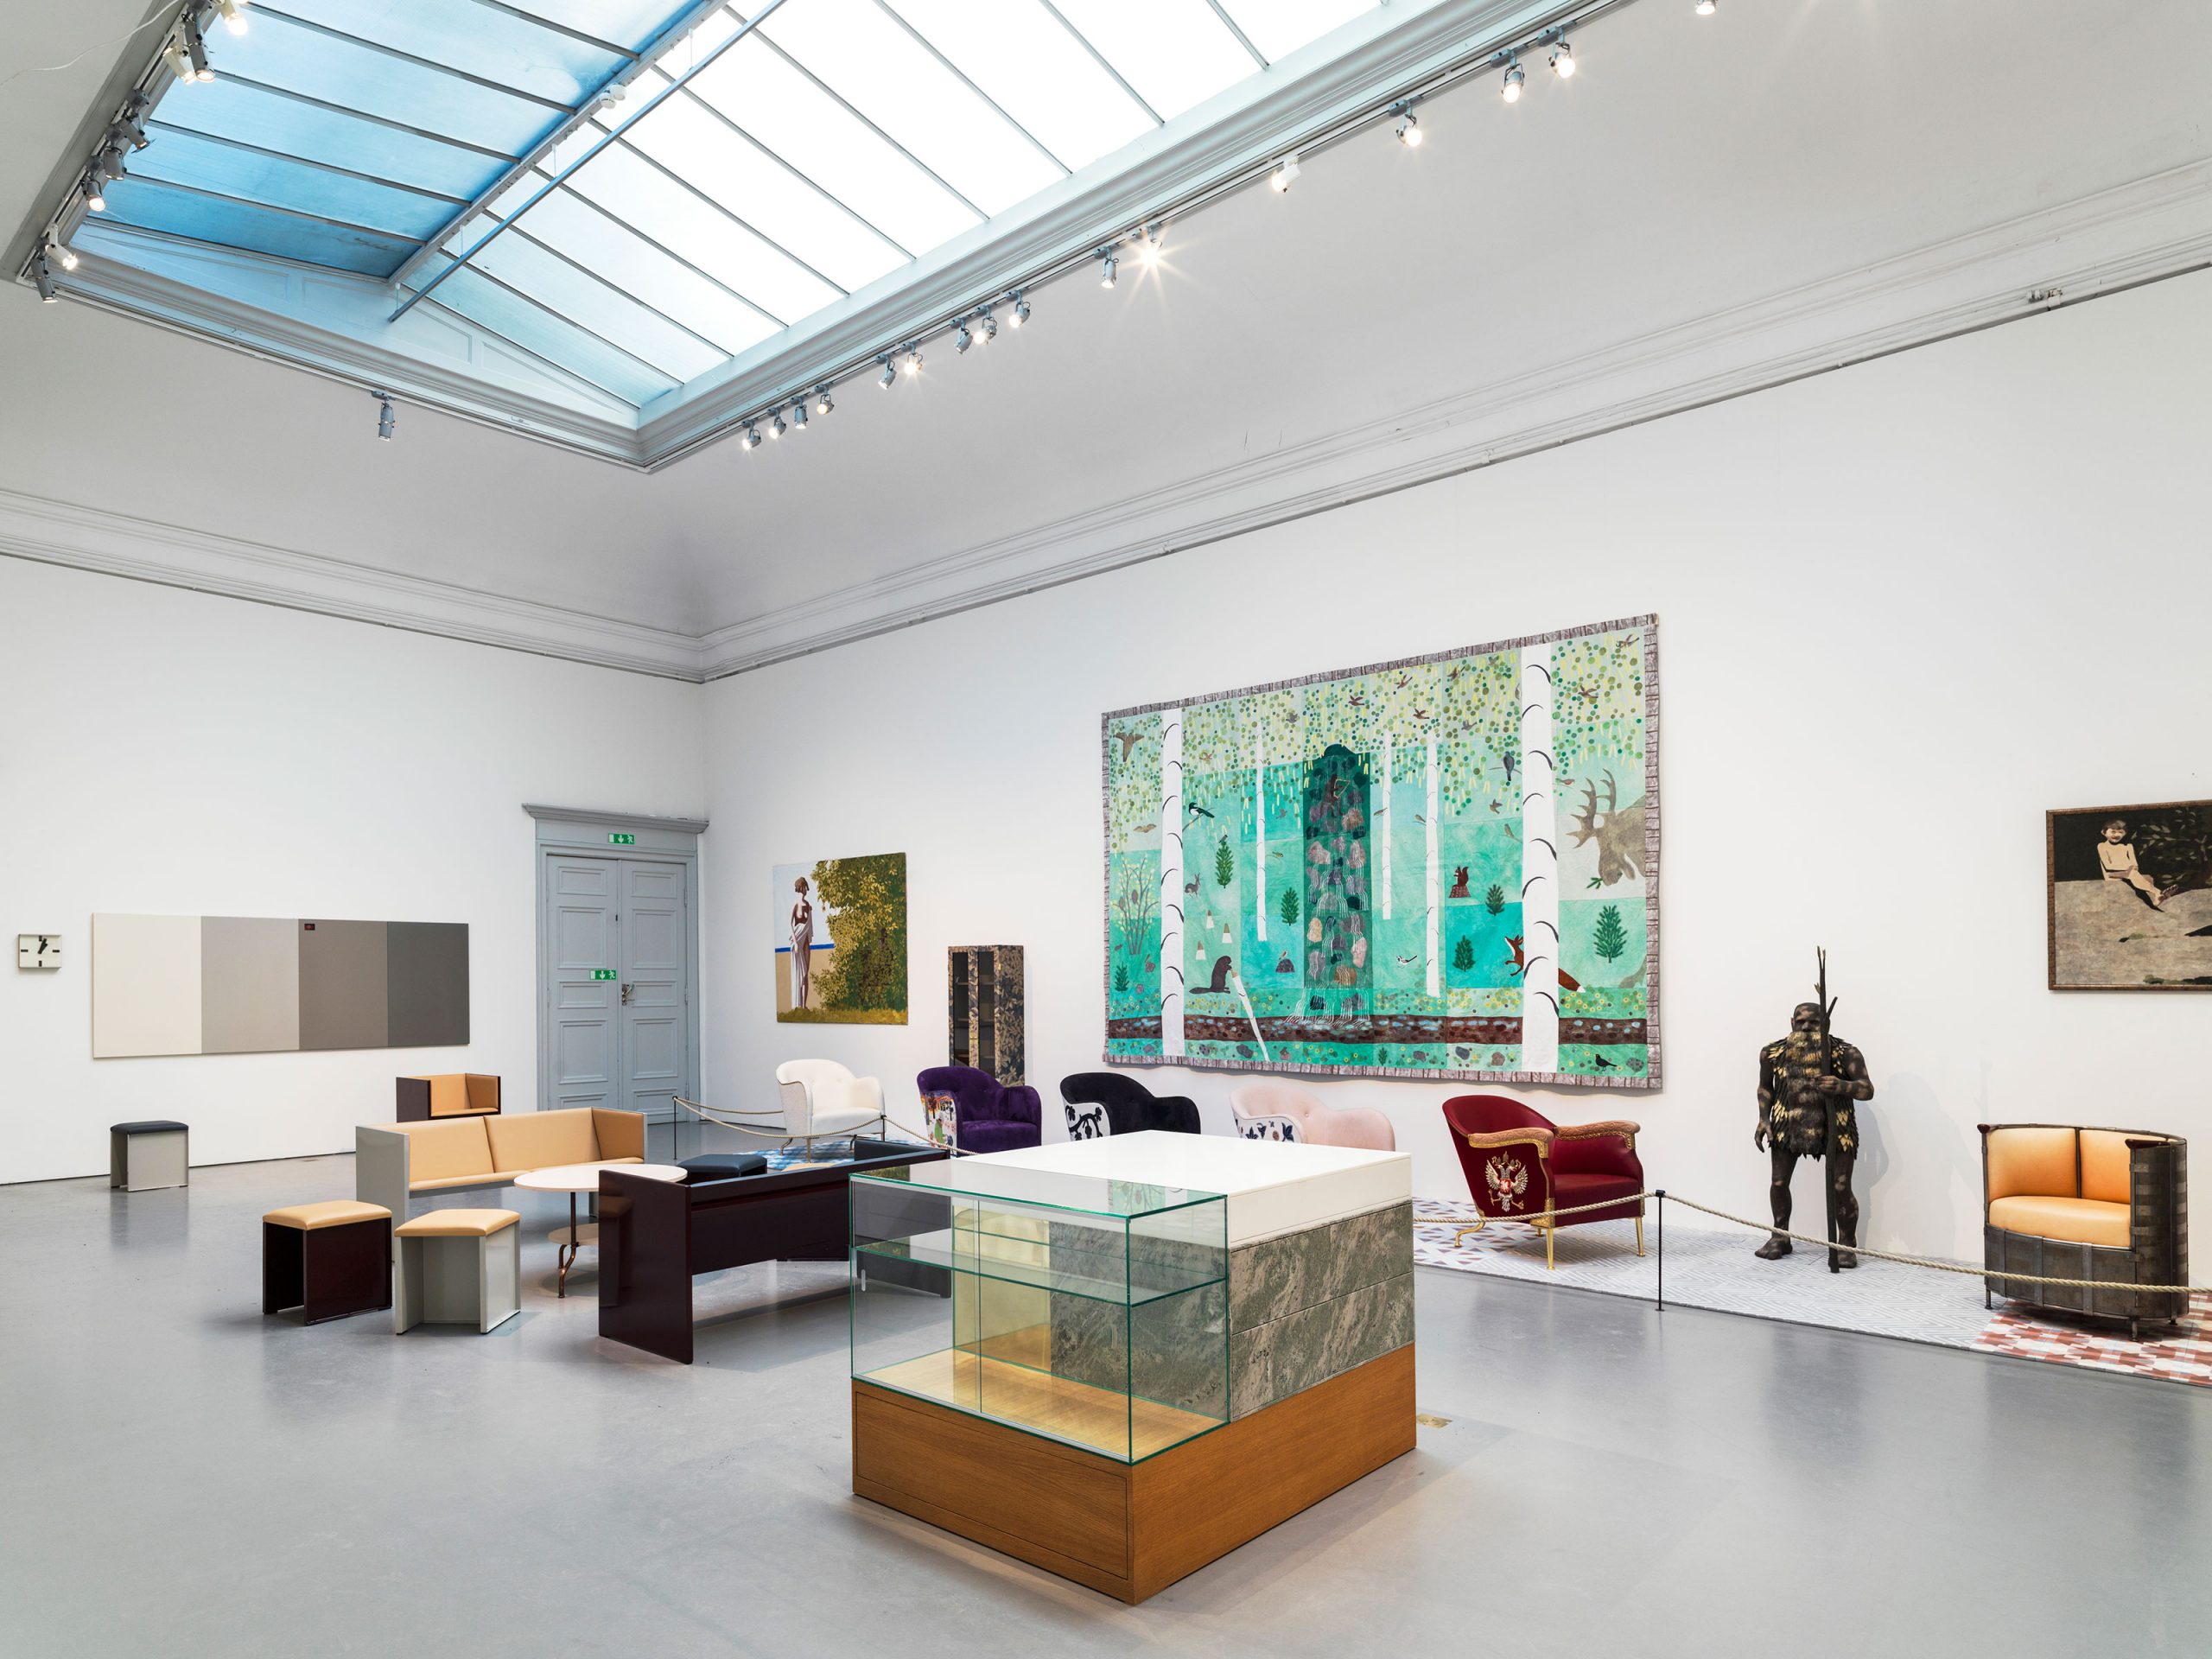 https://www.minustio.se/wp-content/uploads/2021/04/Royal-Academy-of-Fine-Arts-Lodger-and-More-scaled.jpg